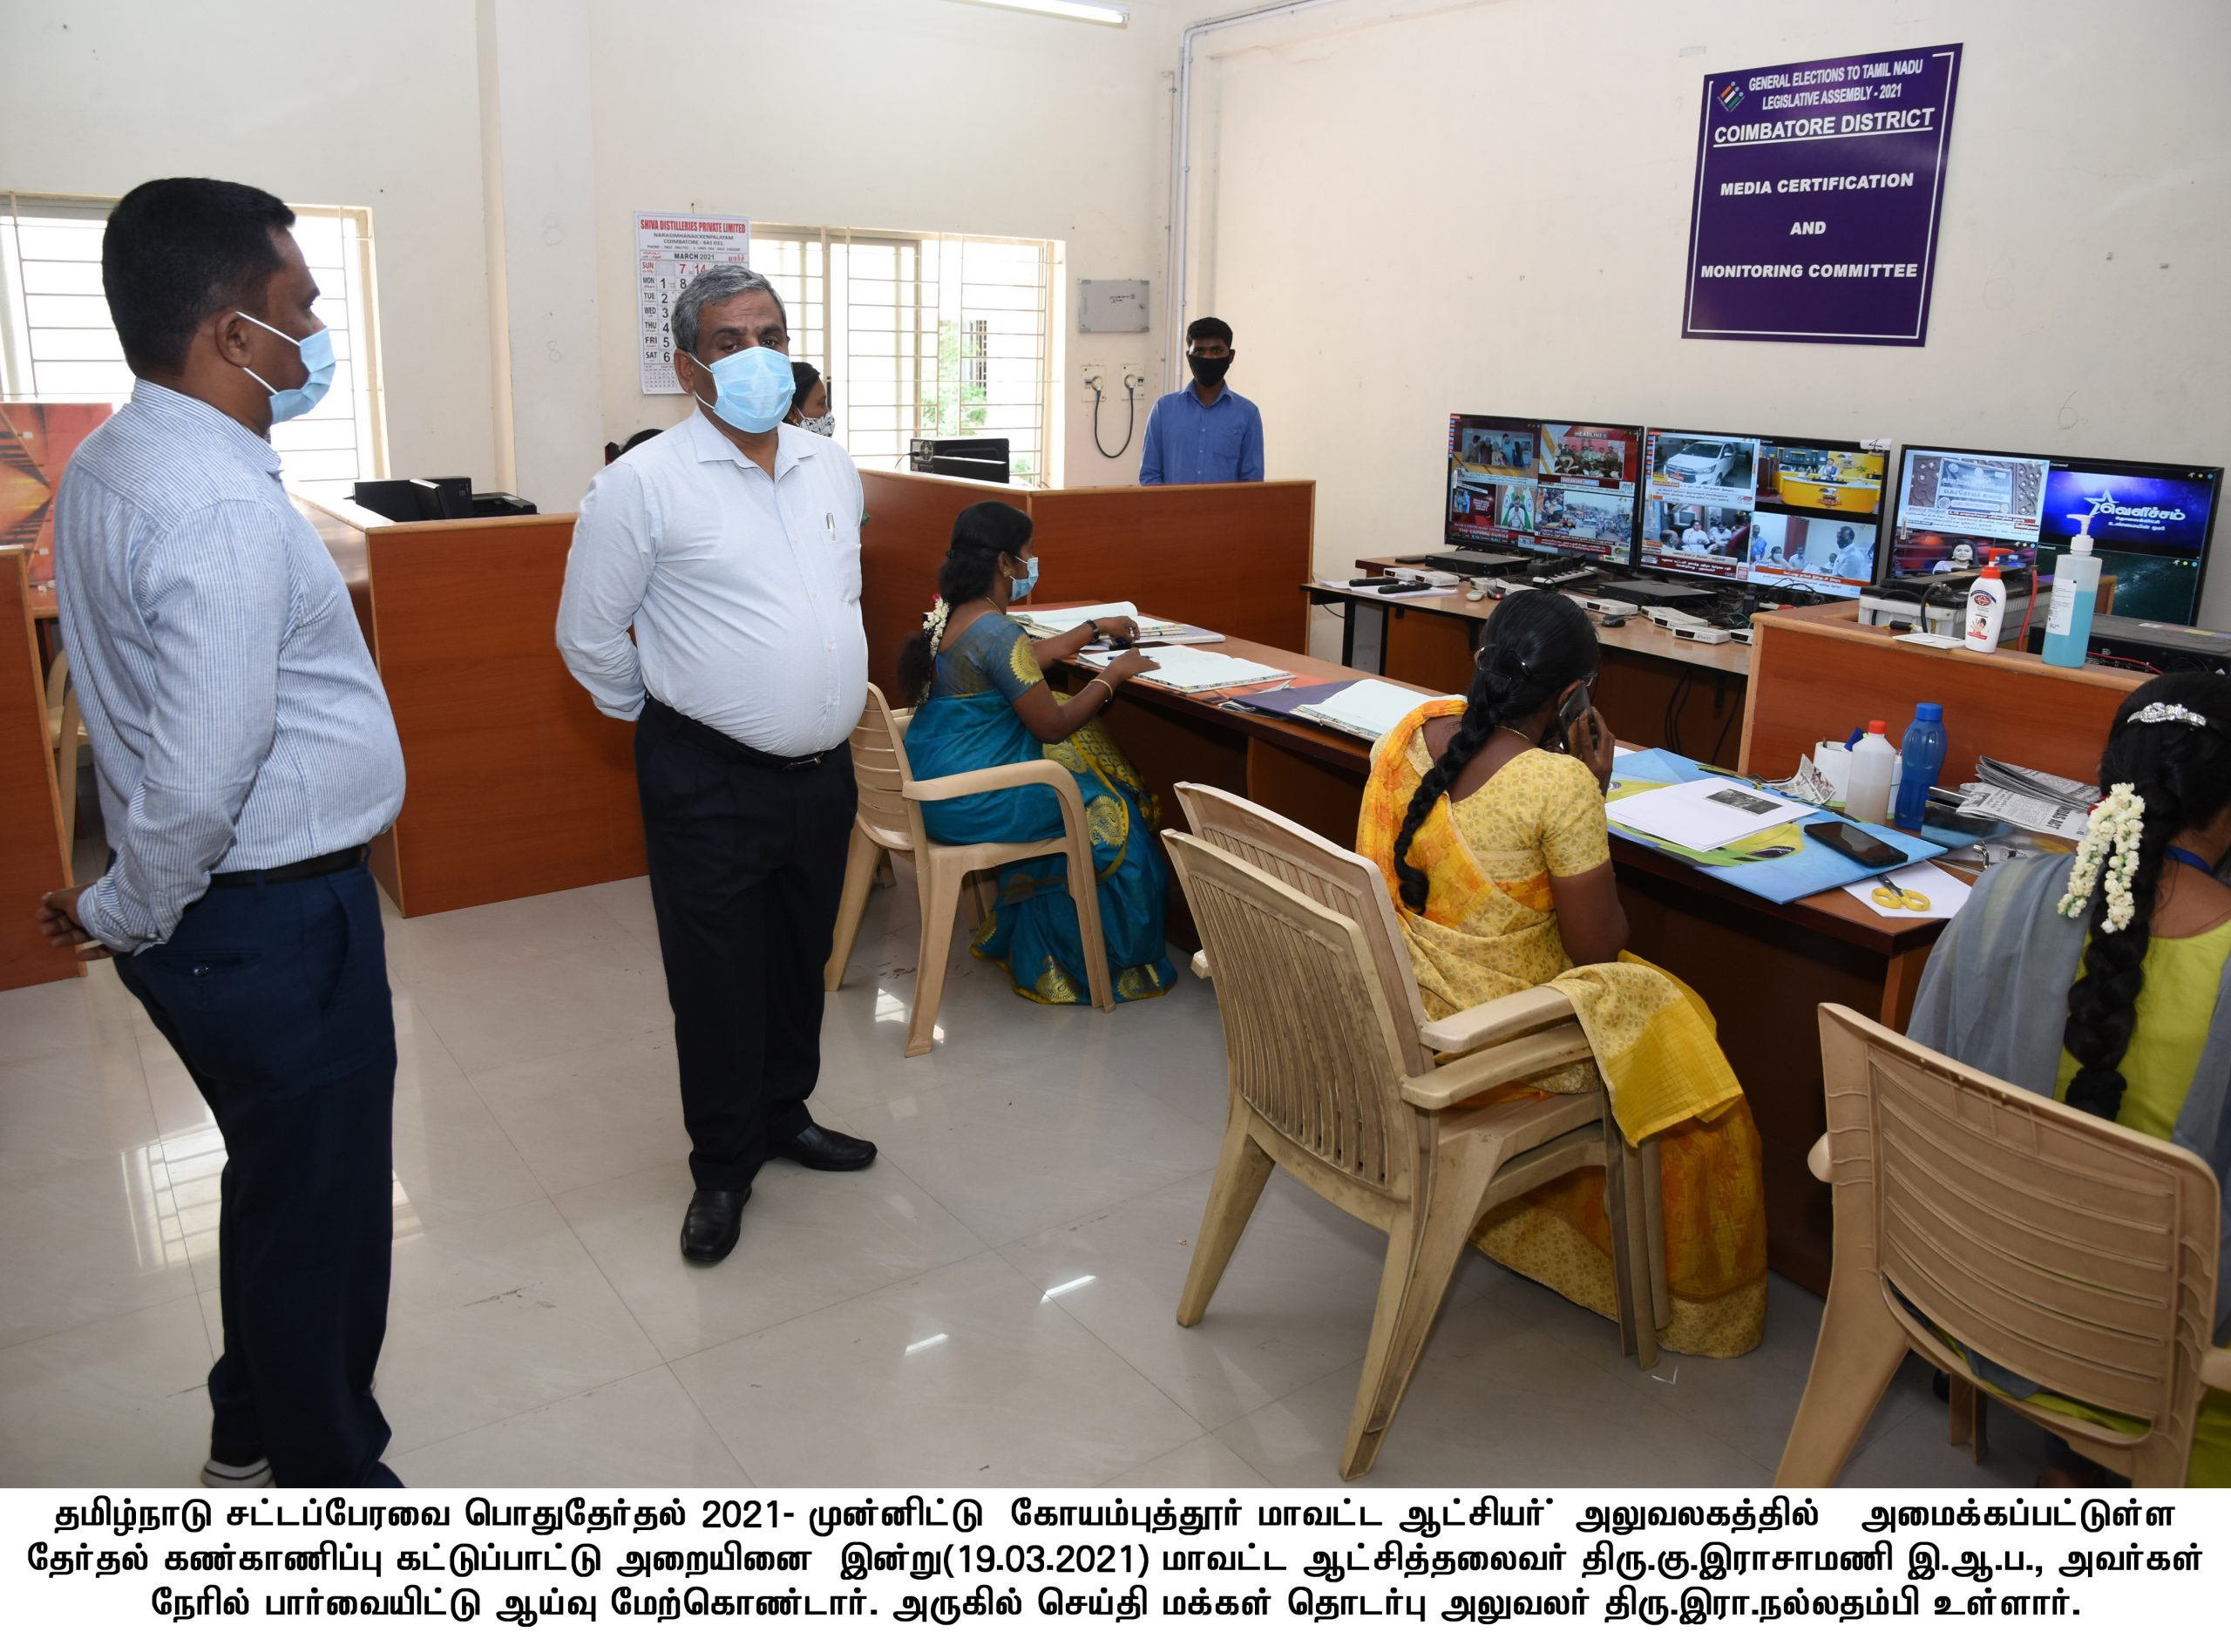 Inspection of Media Certificatiion and Monitoring Committee control room